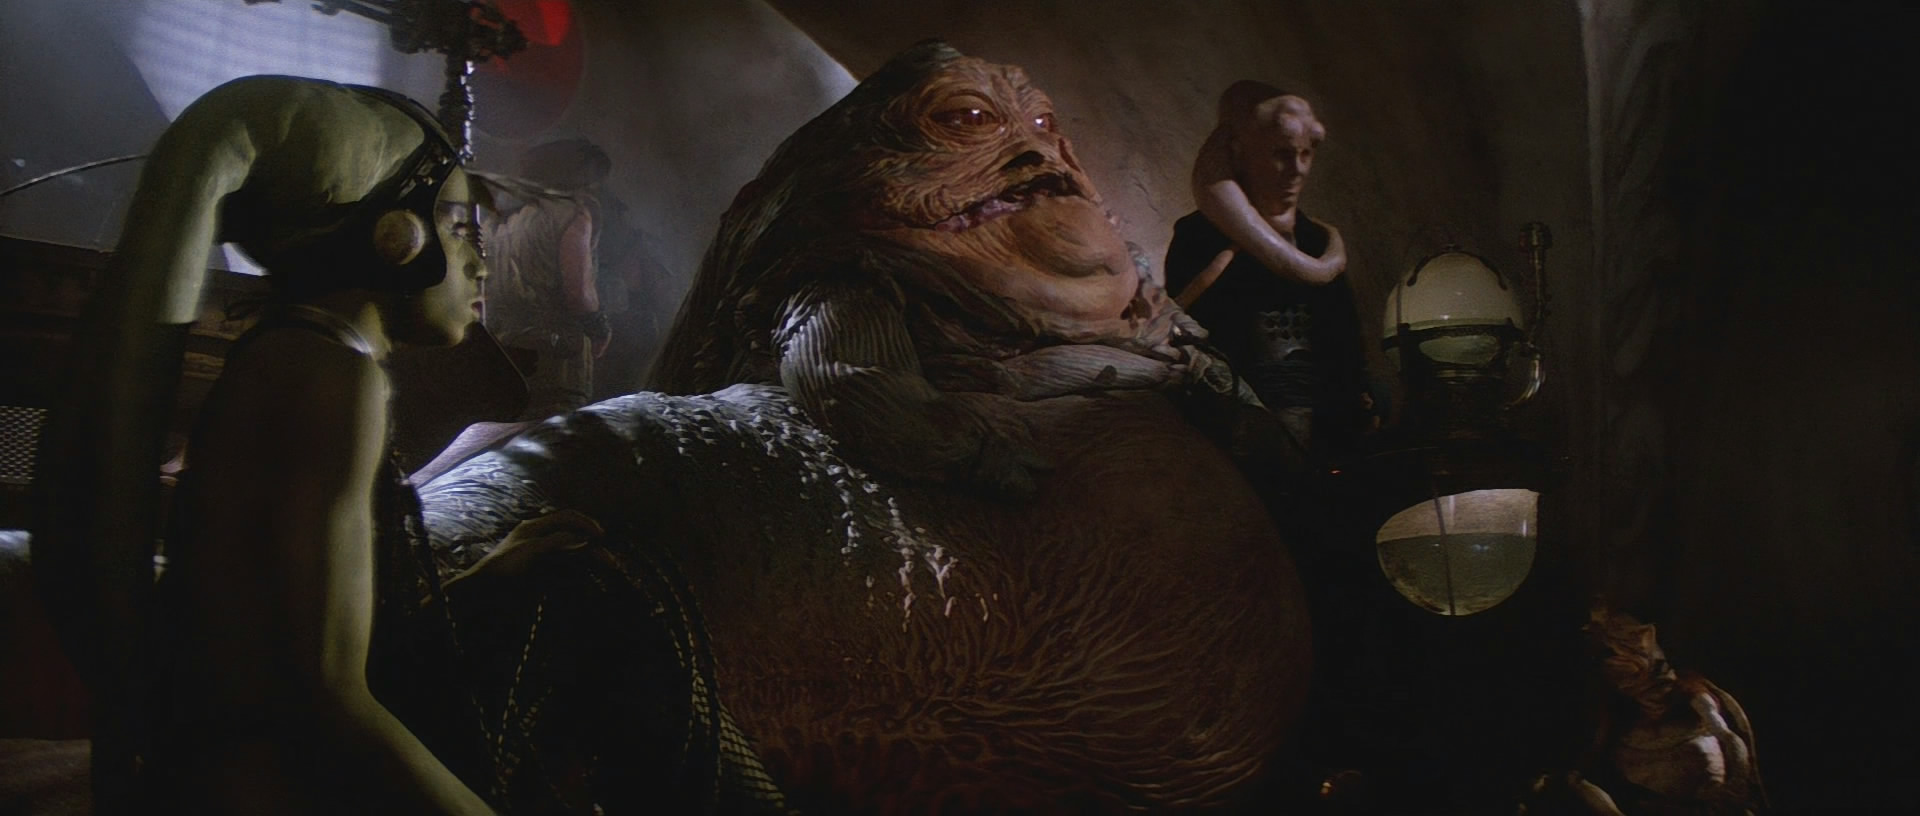 Oola Jabbas Twilek Slave Pictures Jabba The Hutt And Oola